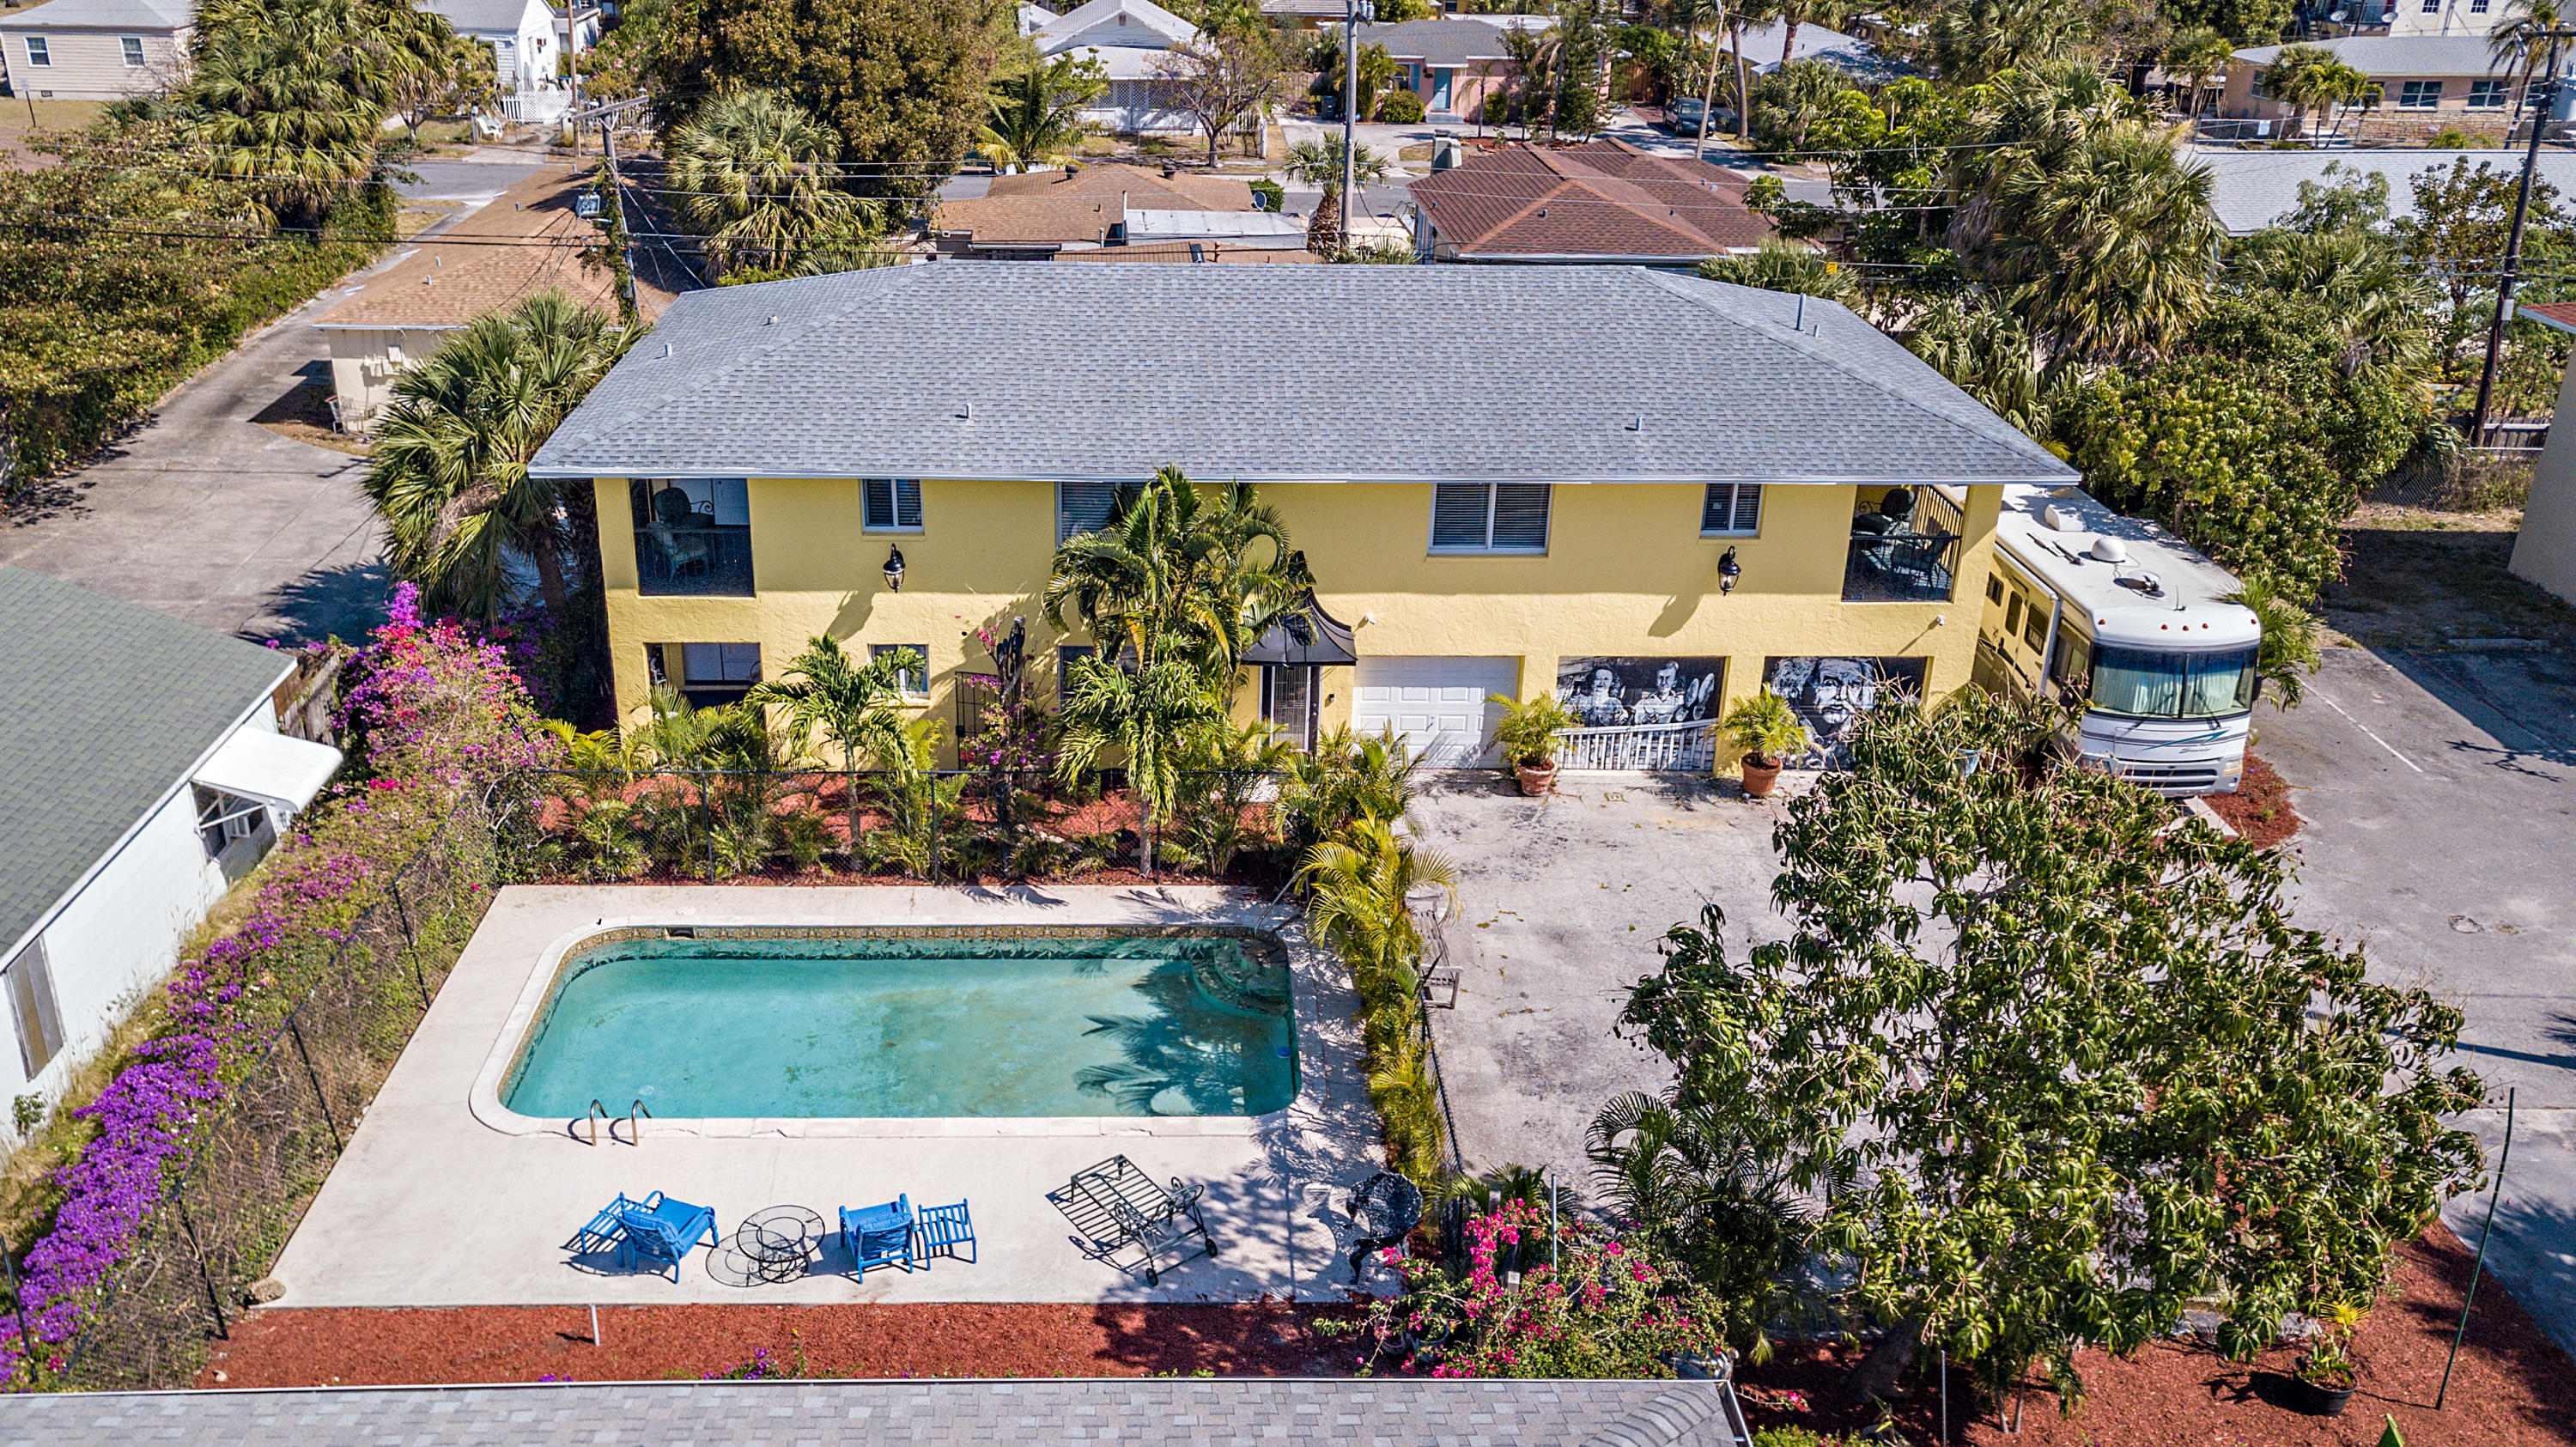 421 49th, West Palm Beach, Florida 33407